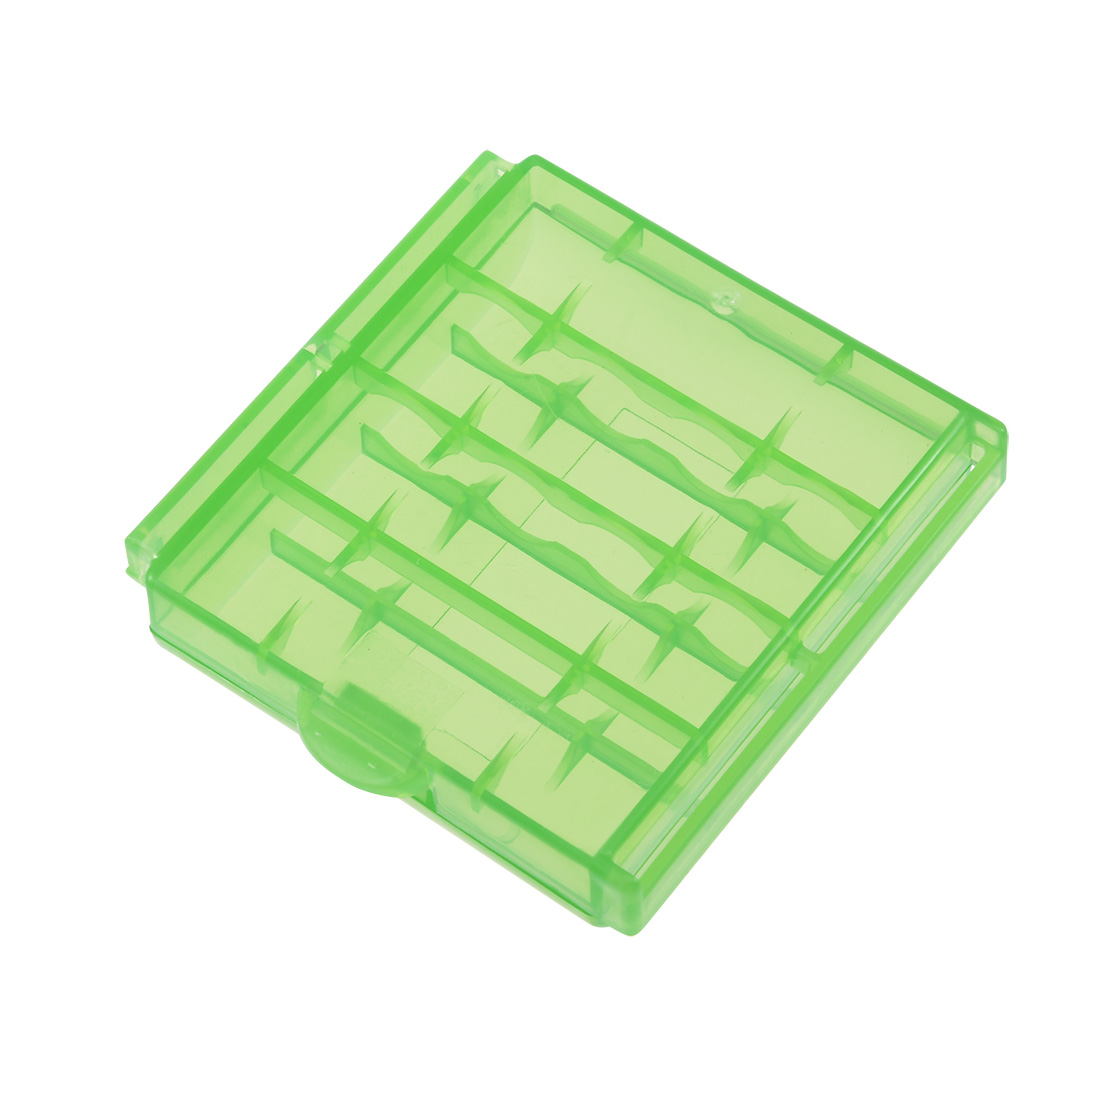 Unique Bargains Portable Battery Storage Case Container Compartment Green for AAA/AA Batteries - image 3 of 4